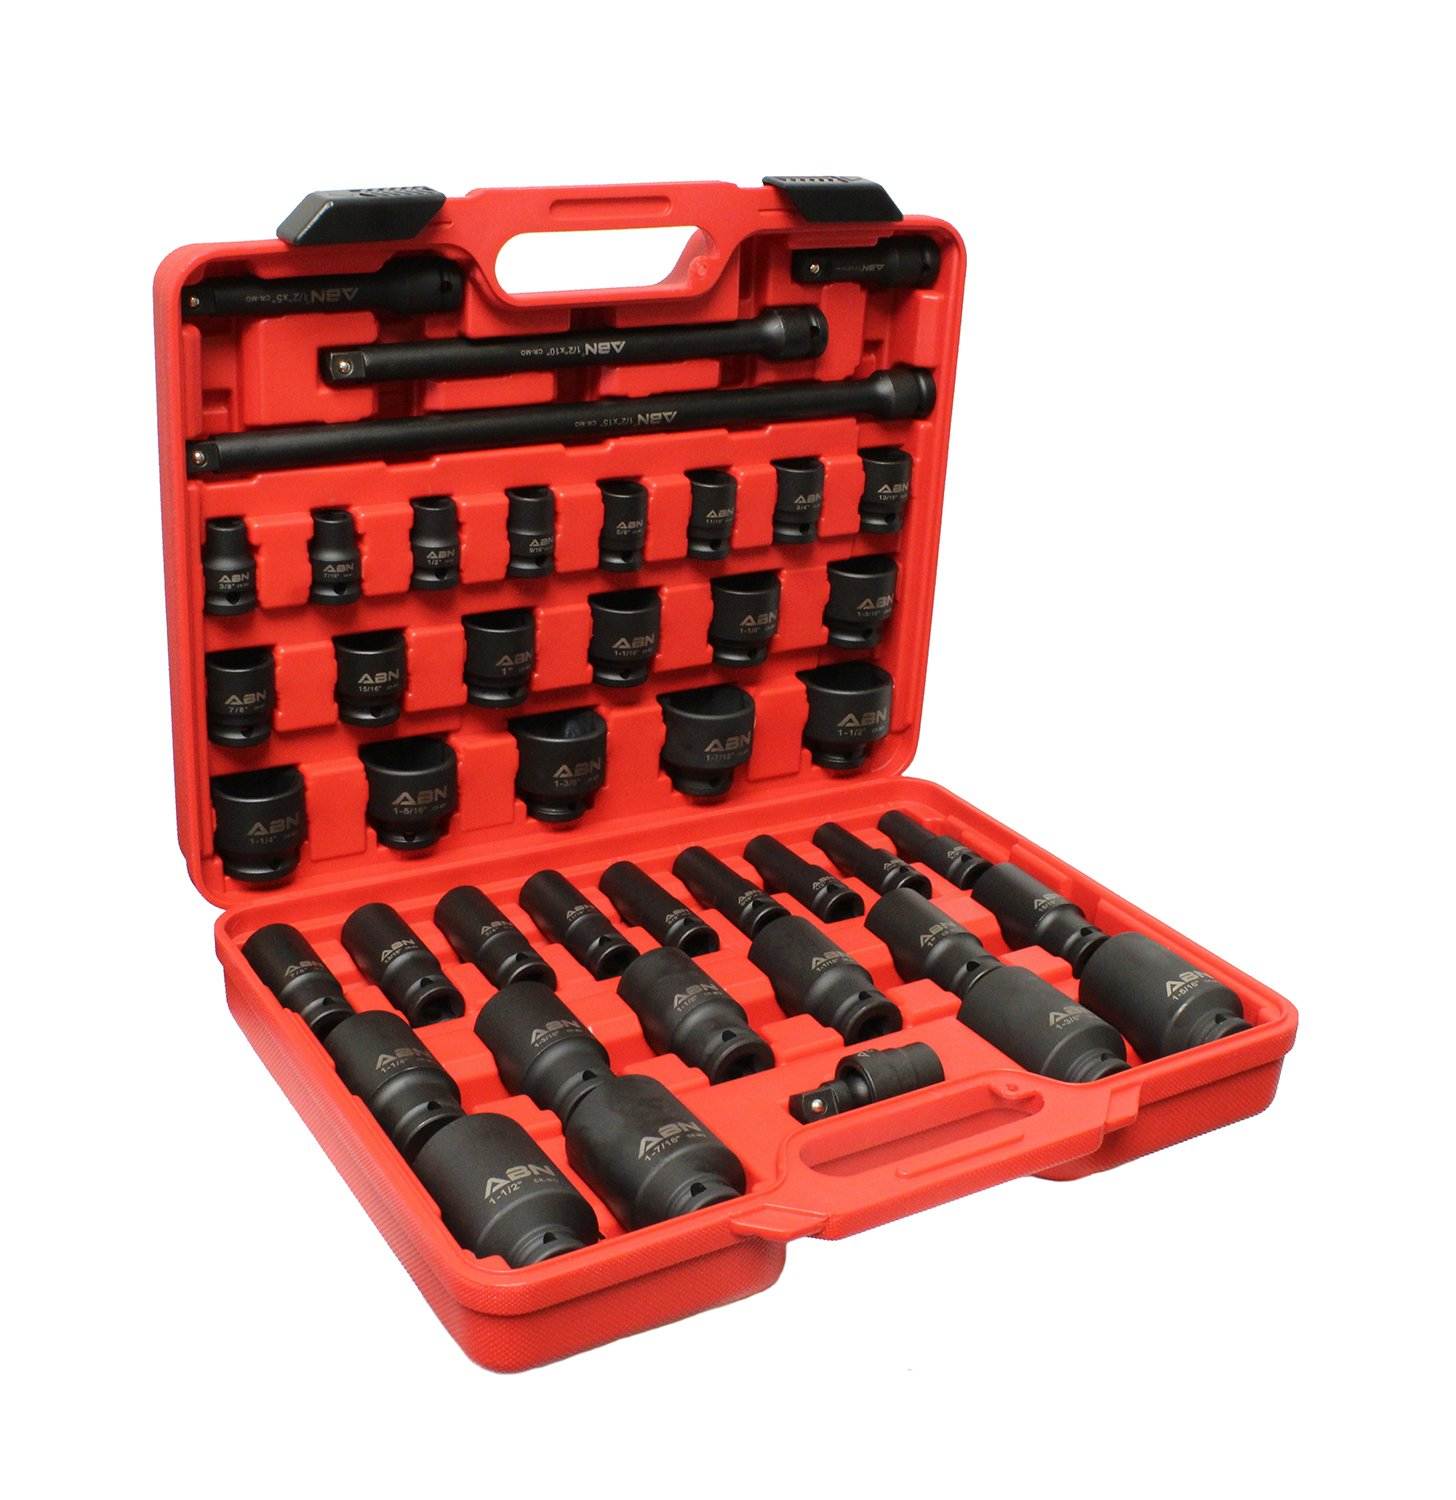 "ABN 1/2'' Inch Drive SAE Standard Master Deep & Shallow Impact Socket 43-Piece Set 3/8–1-1/2"" w/ Extension & Swivel Joint"